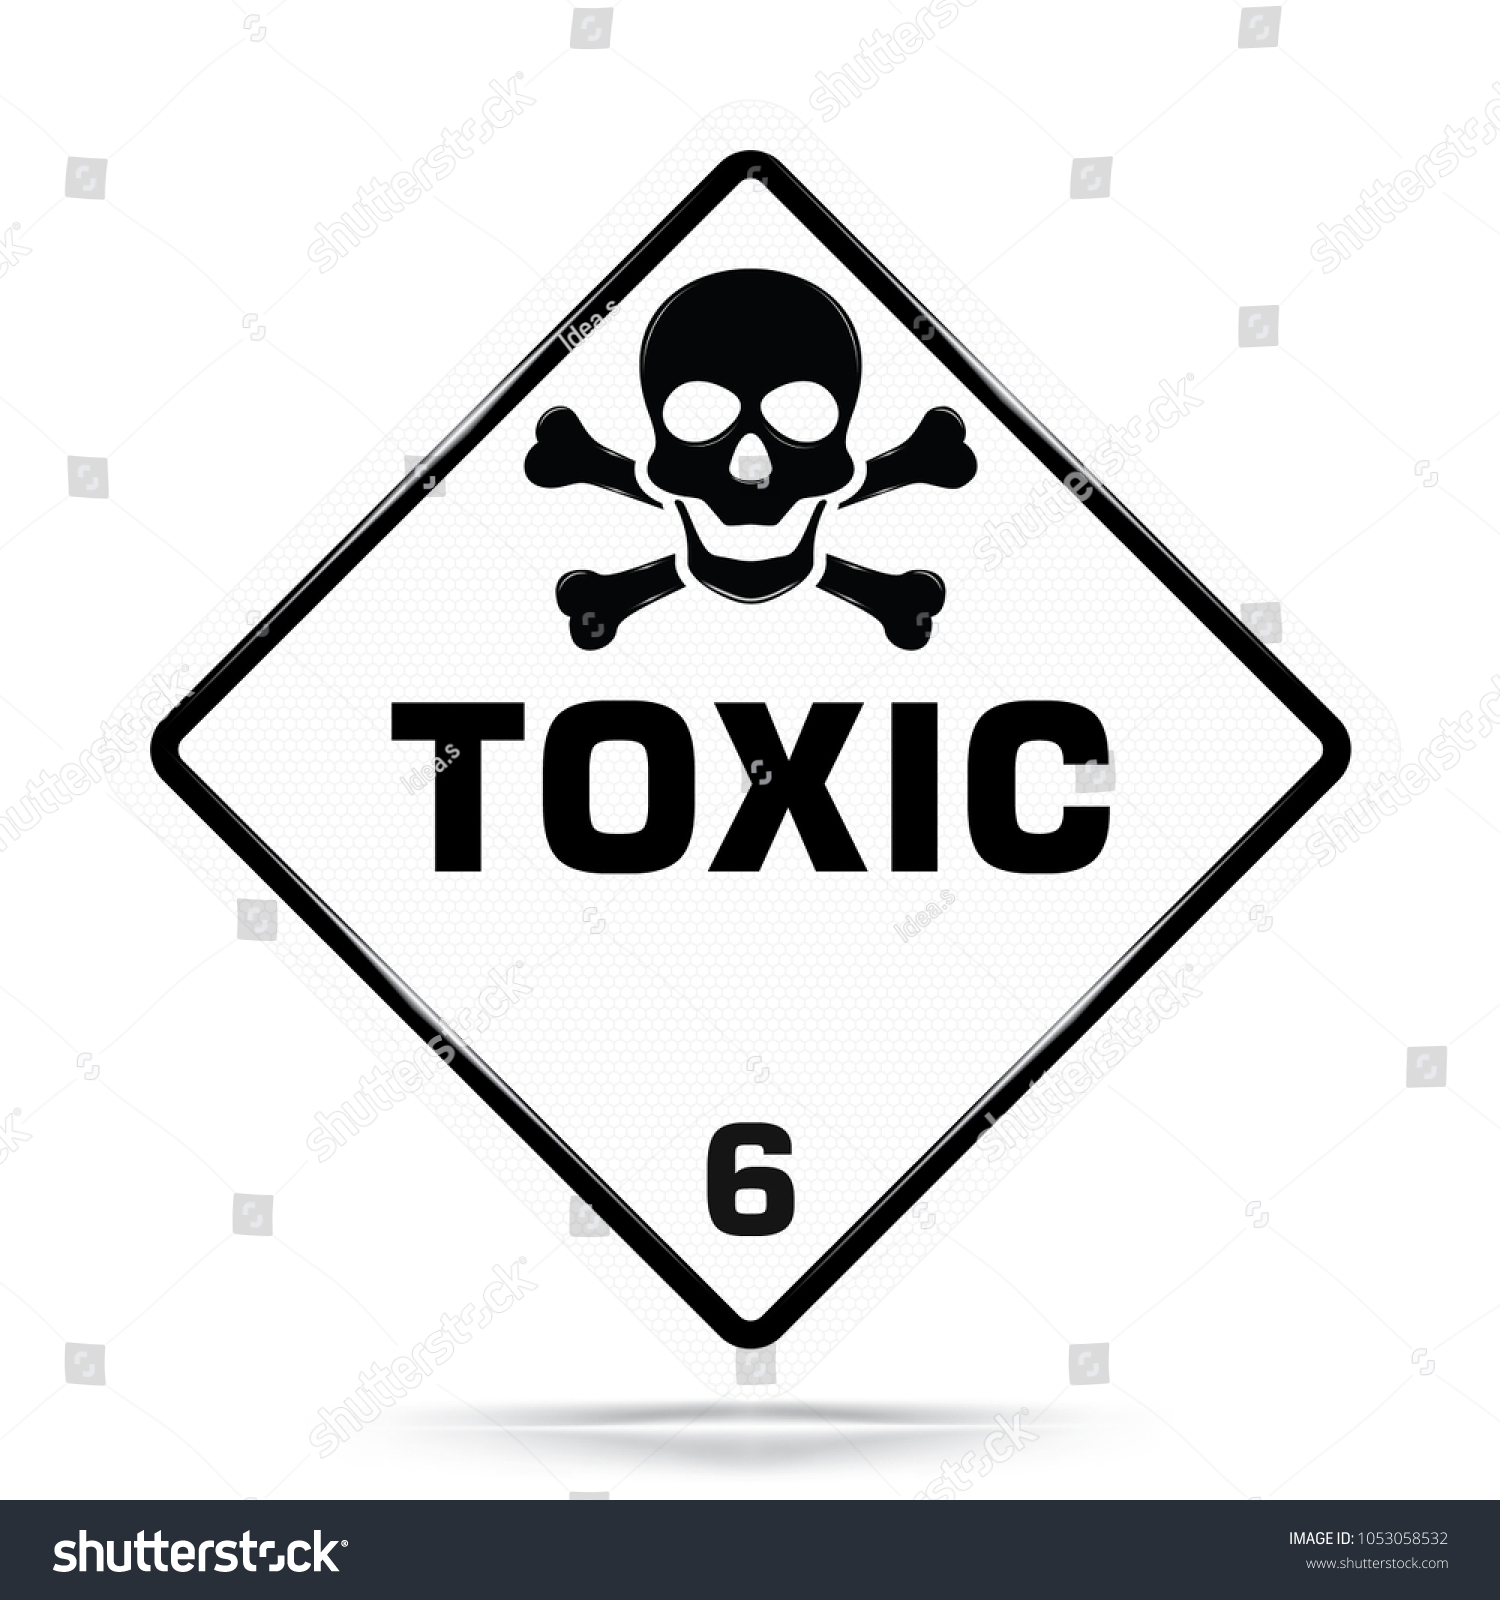 International toxic class 6 symbolwhite warning stock vector international toxic class 6 symbolwhite warning dangerous icon on white background attracting attention biocorpaavc Images